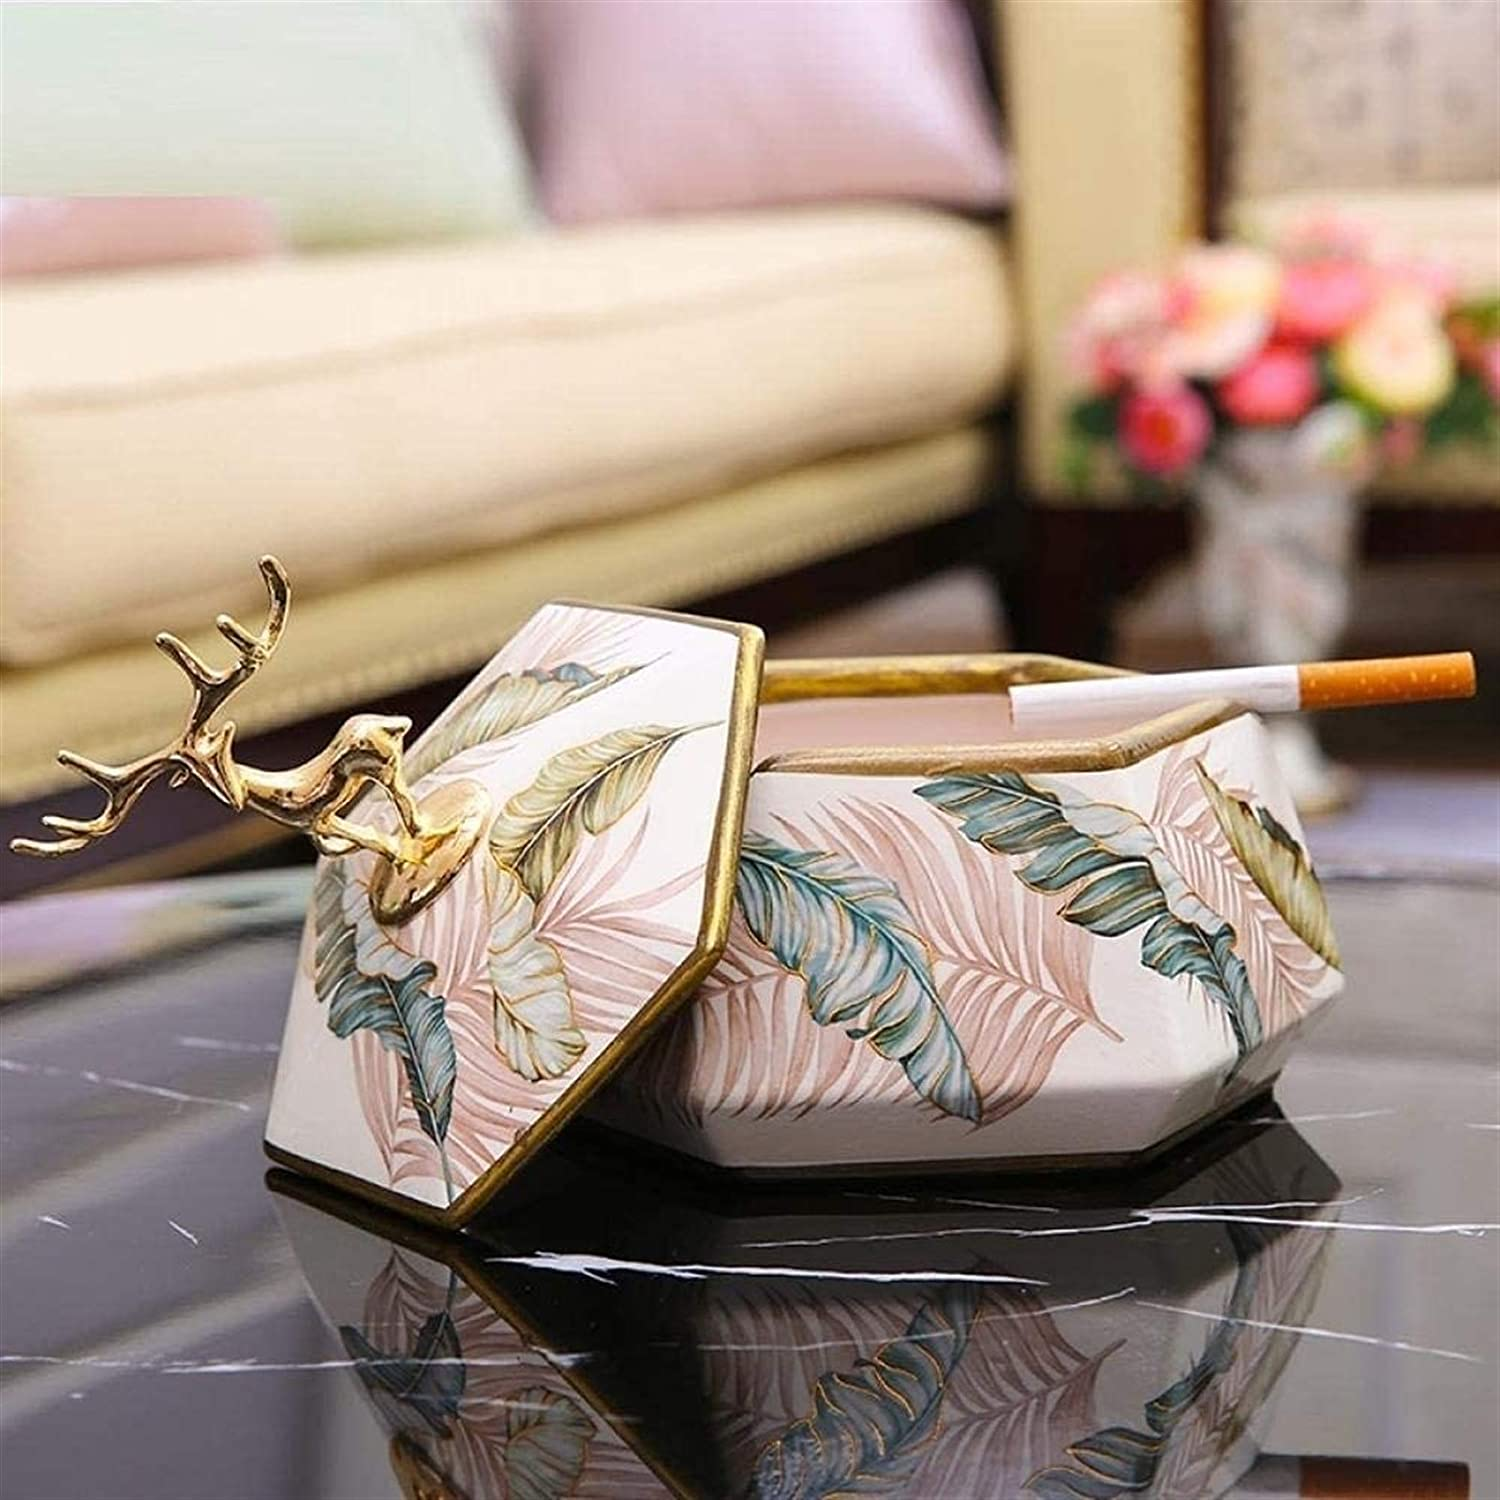 KEEBON Ashtray Ashtrays for Seattle Mall shopping Indoor Lid Ash Creative with